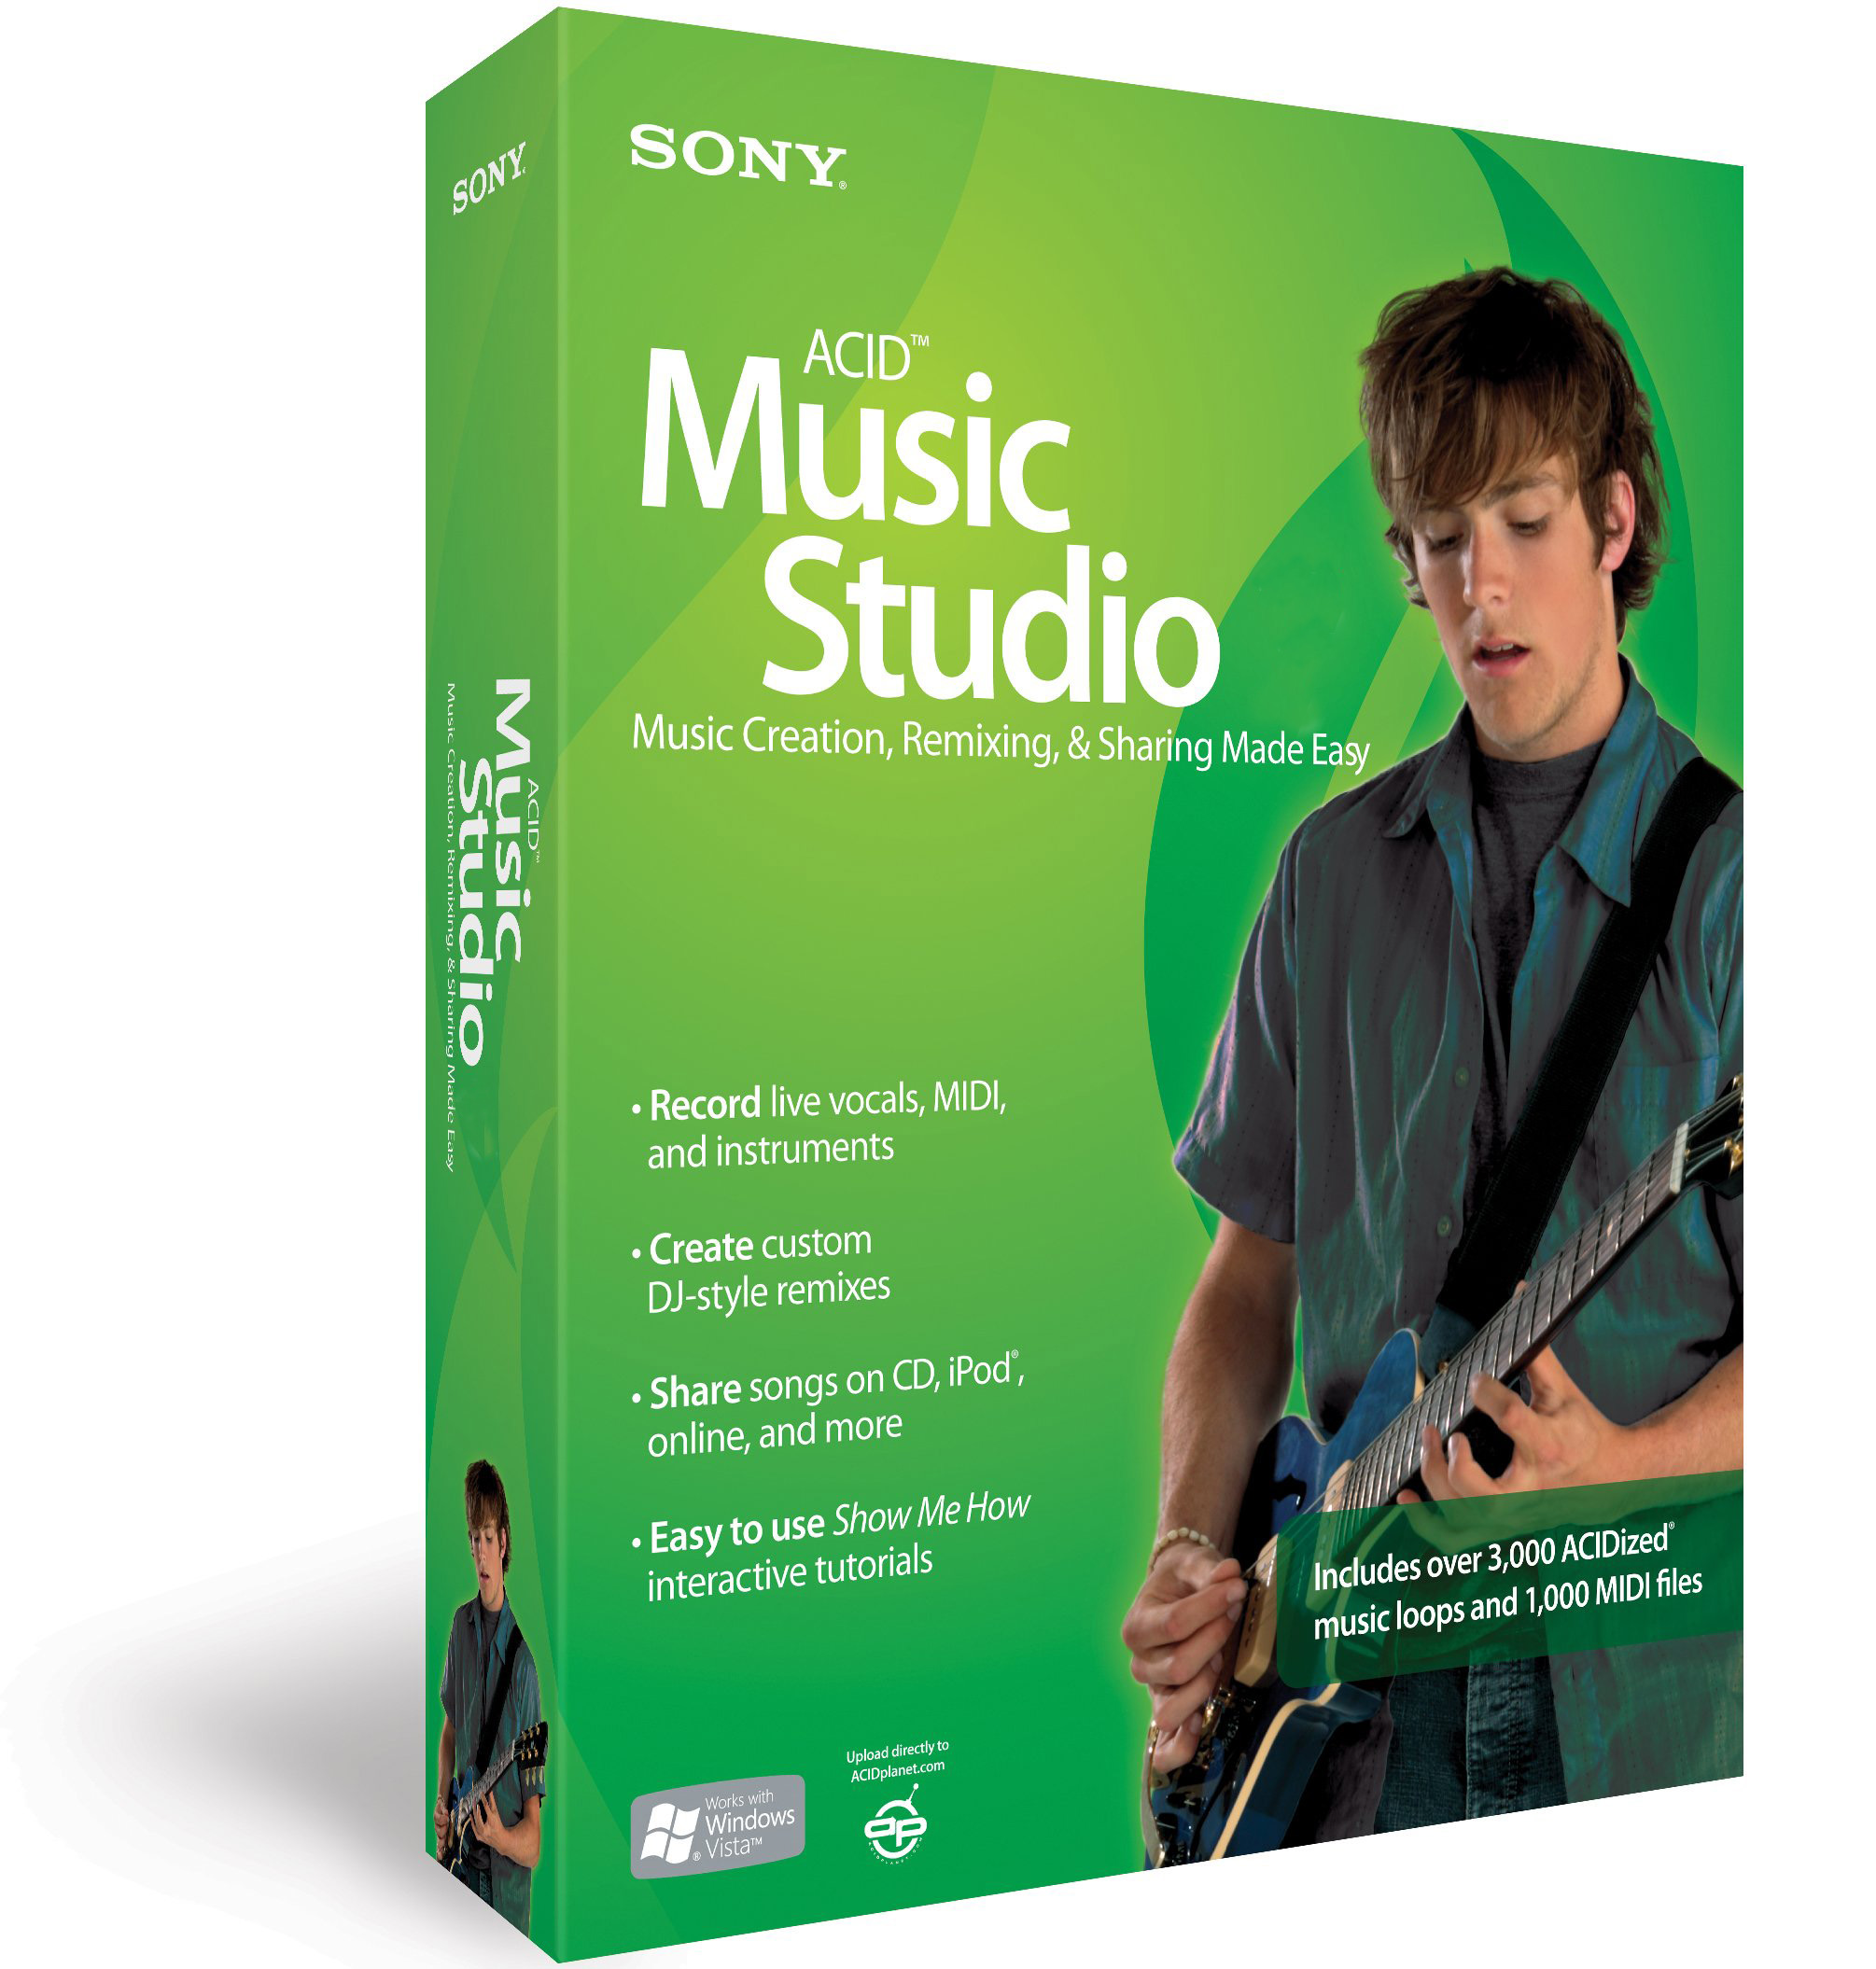 Acid Music Studio free download